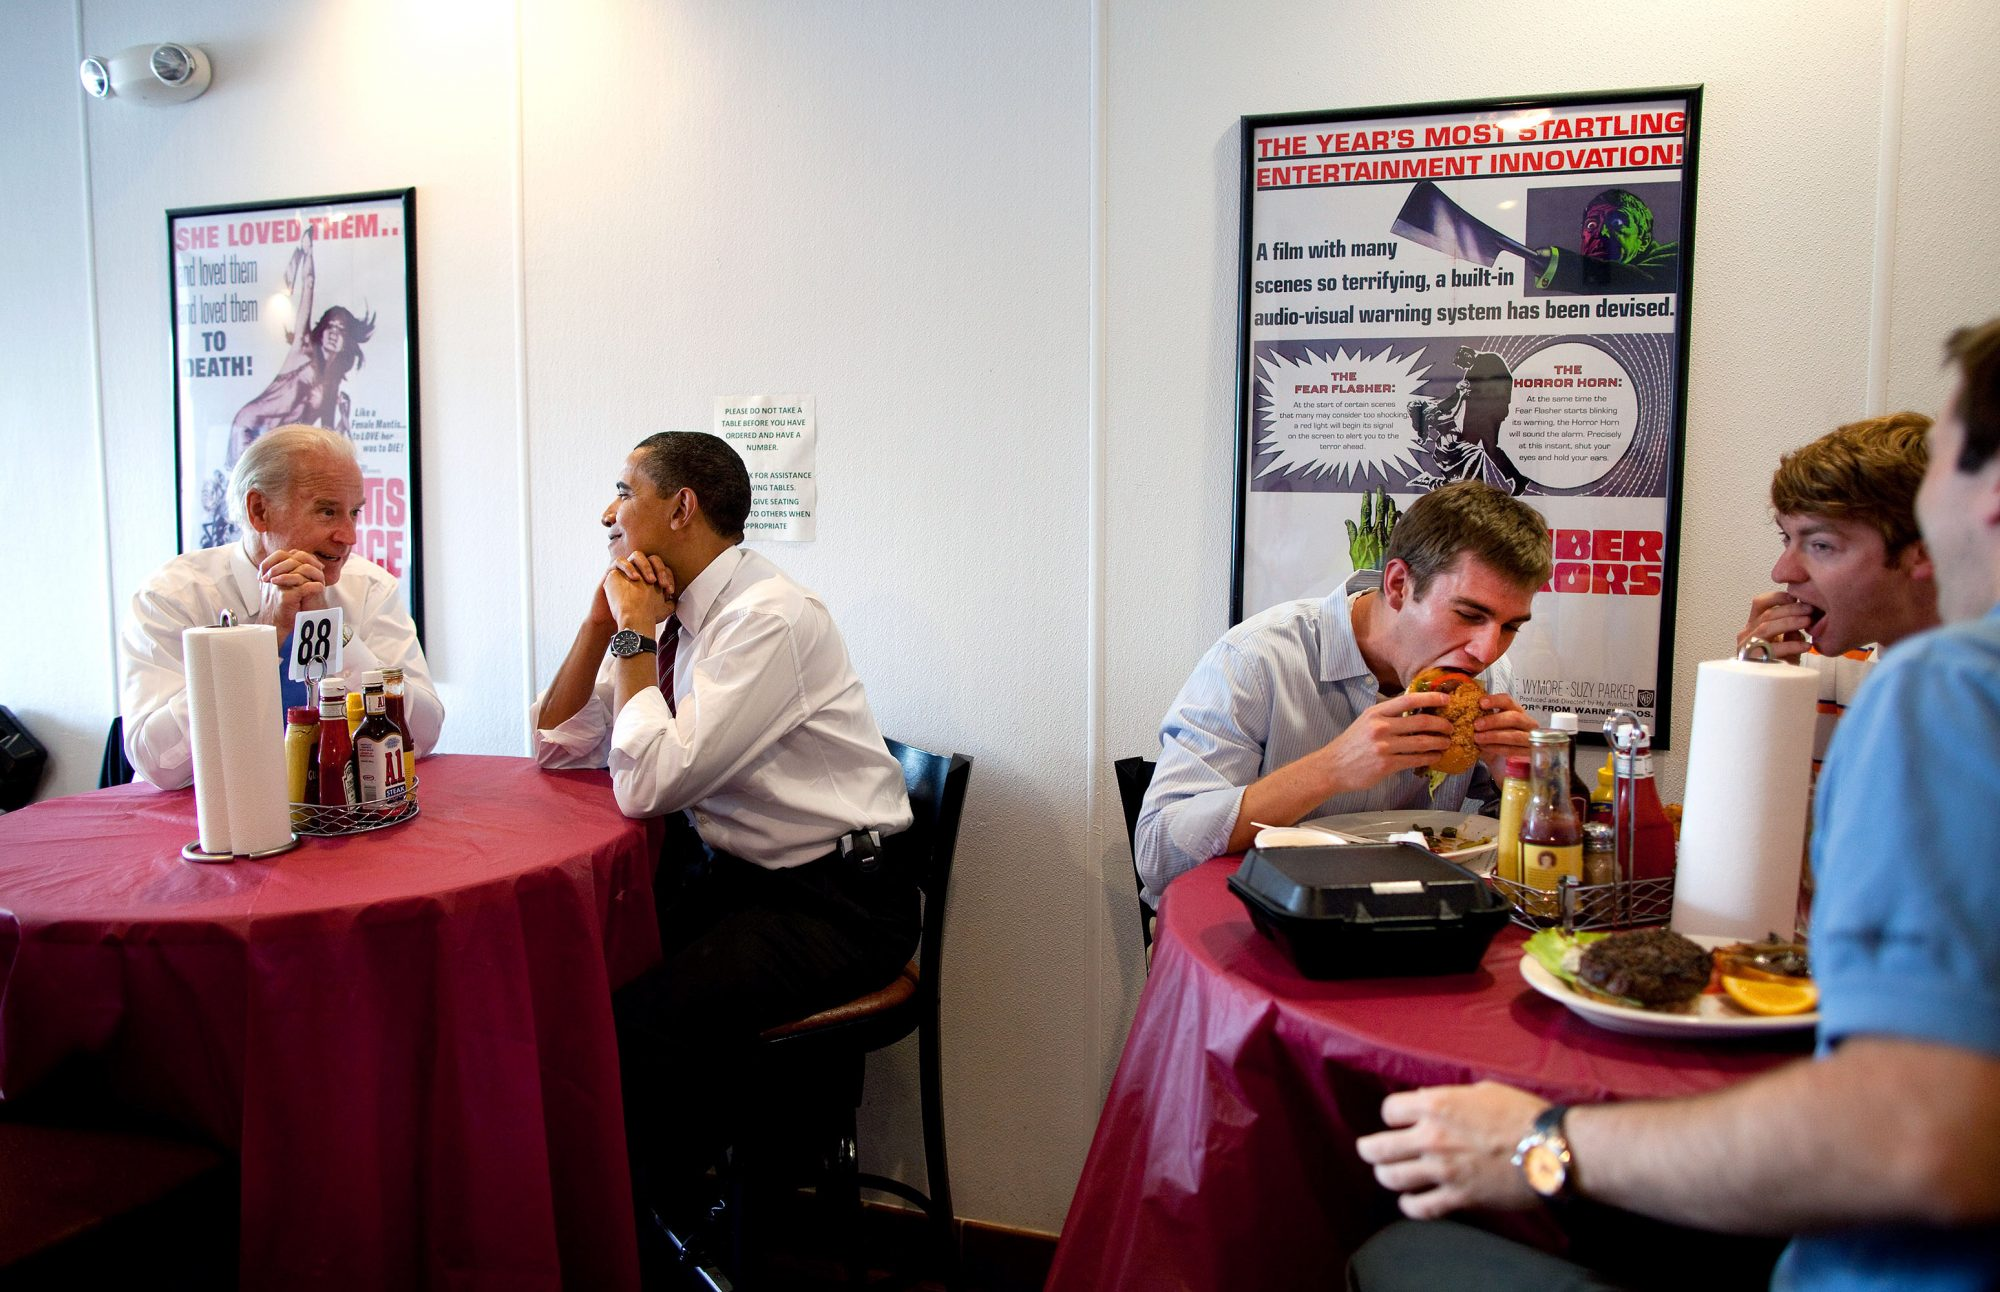 President Barack Obama and Vice President Joe Biden wait for their lunch during an unannounced visit to Rays' Hell Burger in Arlington, Va., May 5, 2009. Official White House Photo by Pete Souza. This official White House photograph is being made available for publication by news organizations and/or for personal use printing by the subject(s) of the photograph. The photograph may not be manipulated in any way or used in materials, advertisements, products, or promotions that in any way suggest approval or endorsement of the President, the First Family, or the White House. This official White House photograph is being made available for publication by news organizations and/or for personal use print The White House Official Photographer